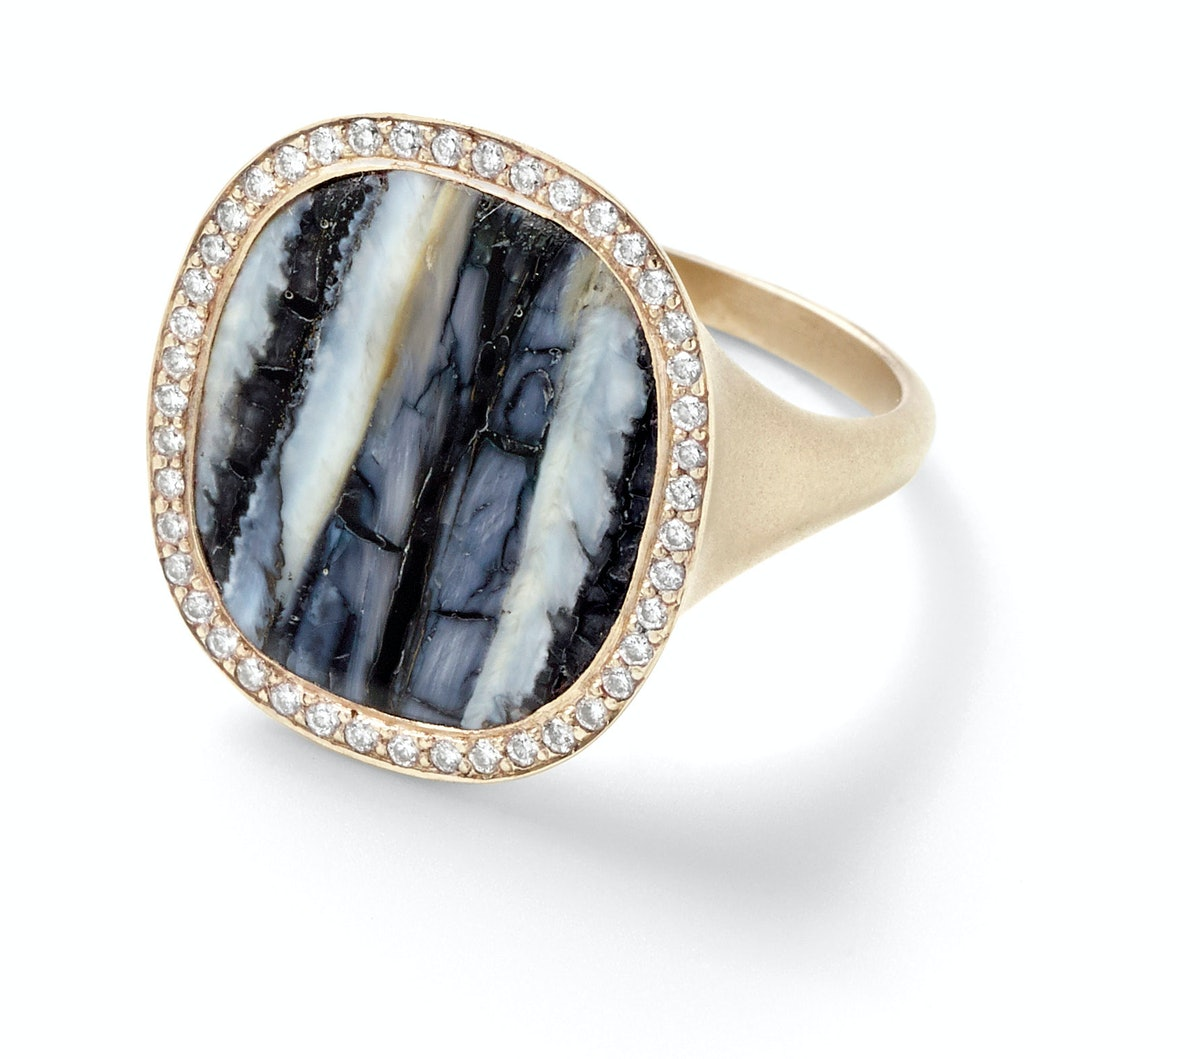 Monique Péan gold, fossilized woolly mammoth tooth, and diamond ring, $8,735, Barneys New York, New York, 212.826.8900.